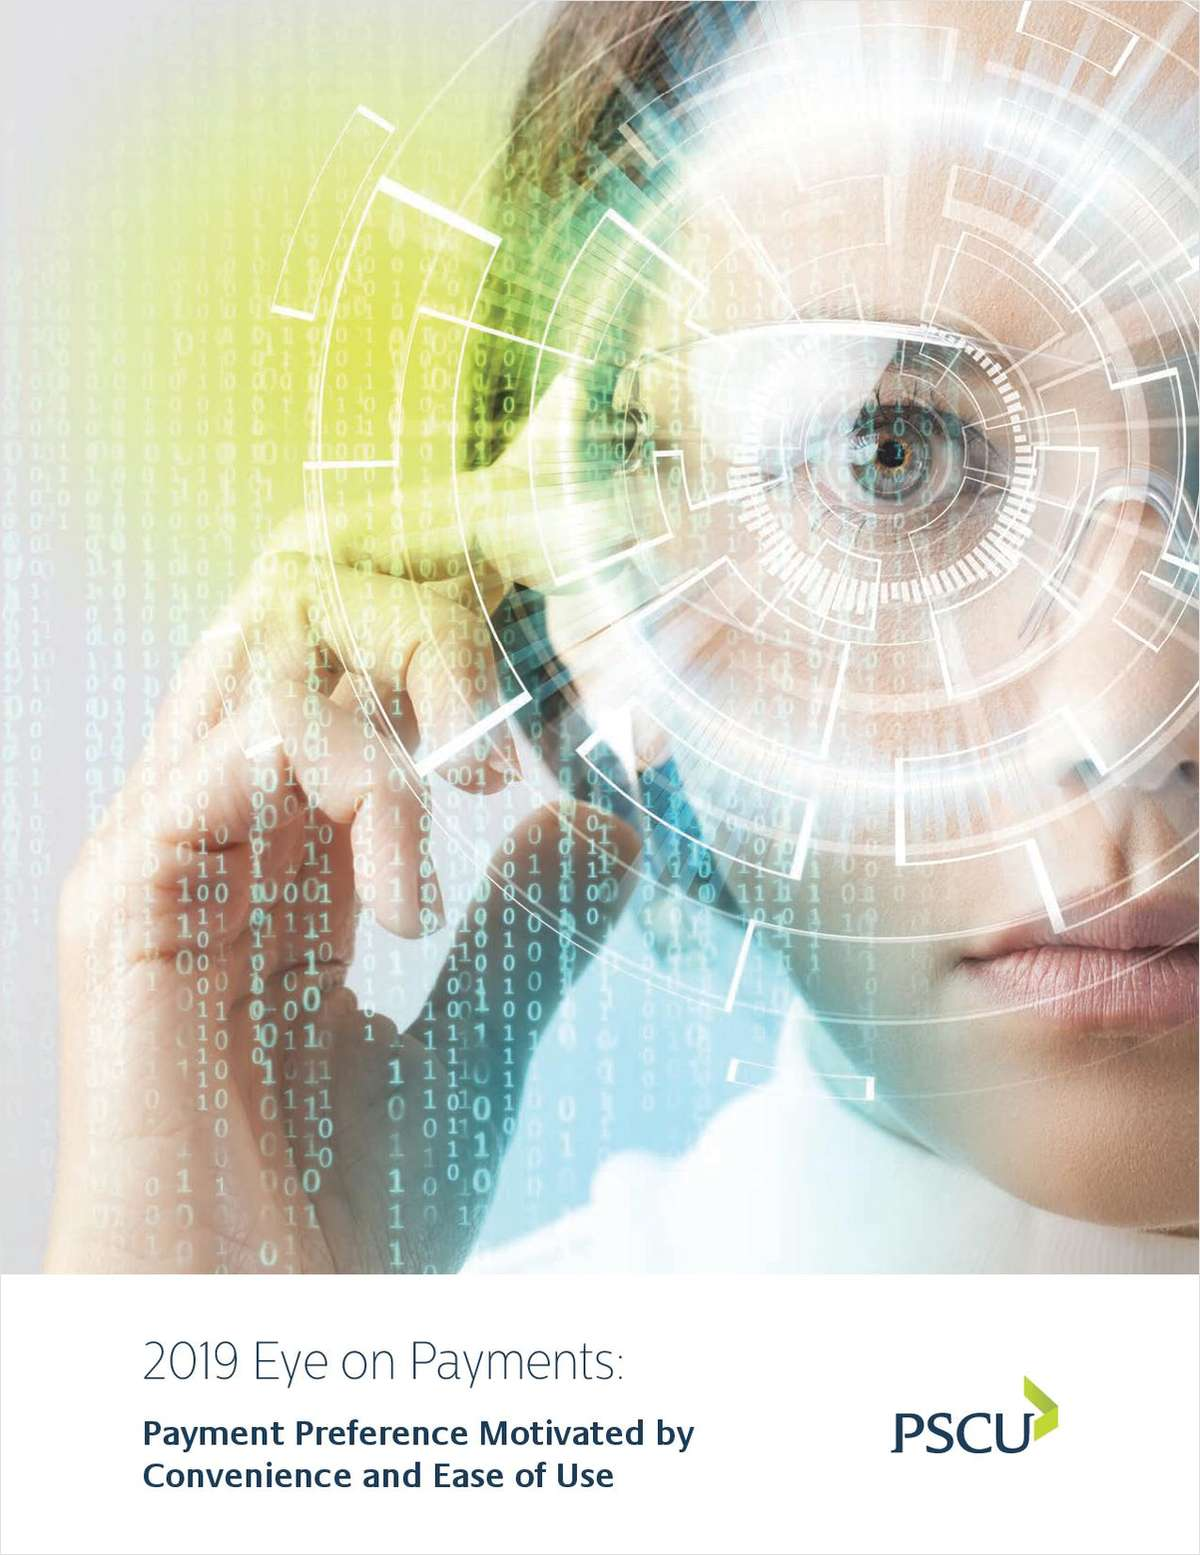 2019 Eye on Payments: Payment Preference Motivated by Convenience and Ease of Use